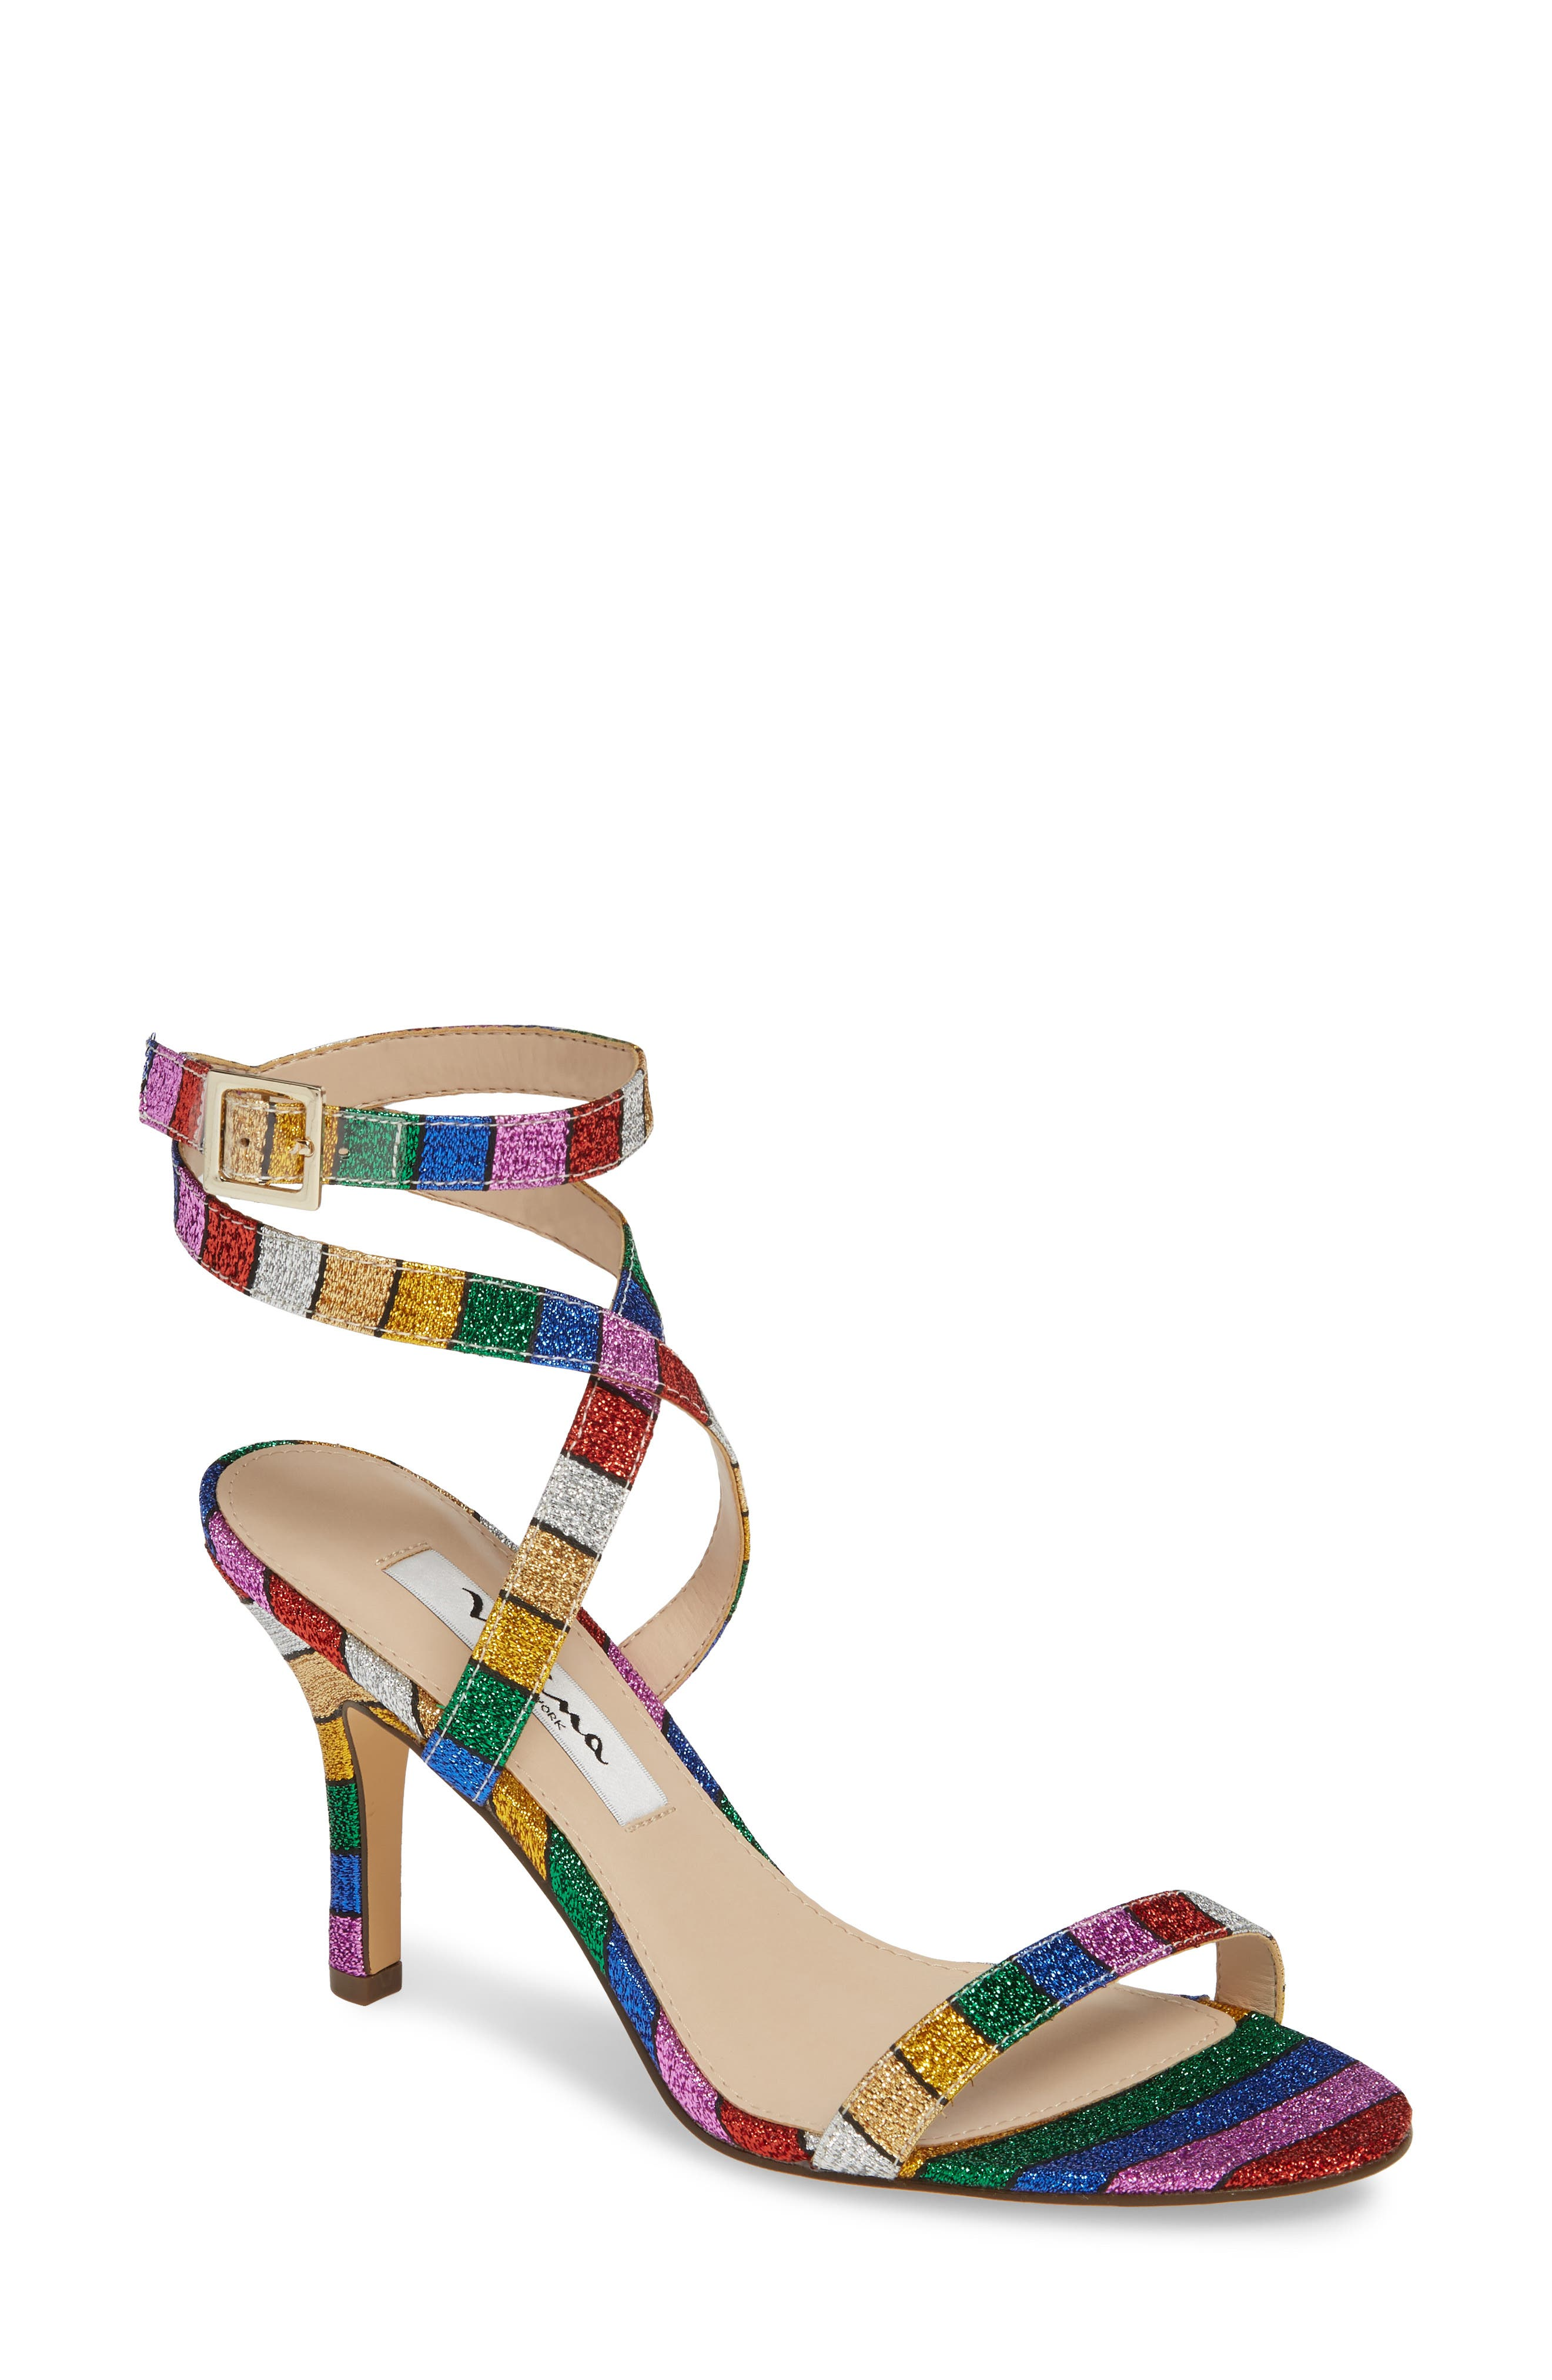 NINA Vanna Ankle Strap Sandal, Main, color, RAINBOW MULTI FABRIC